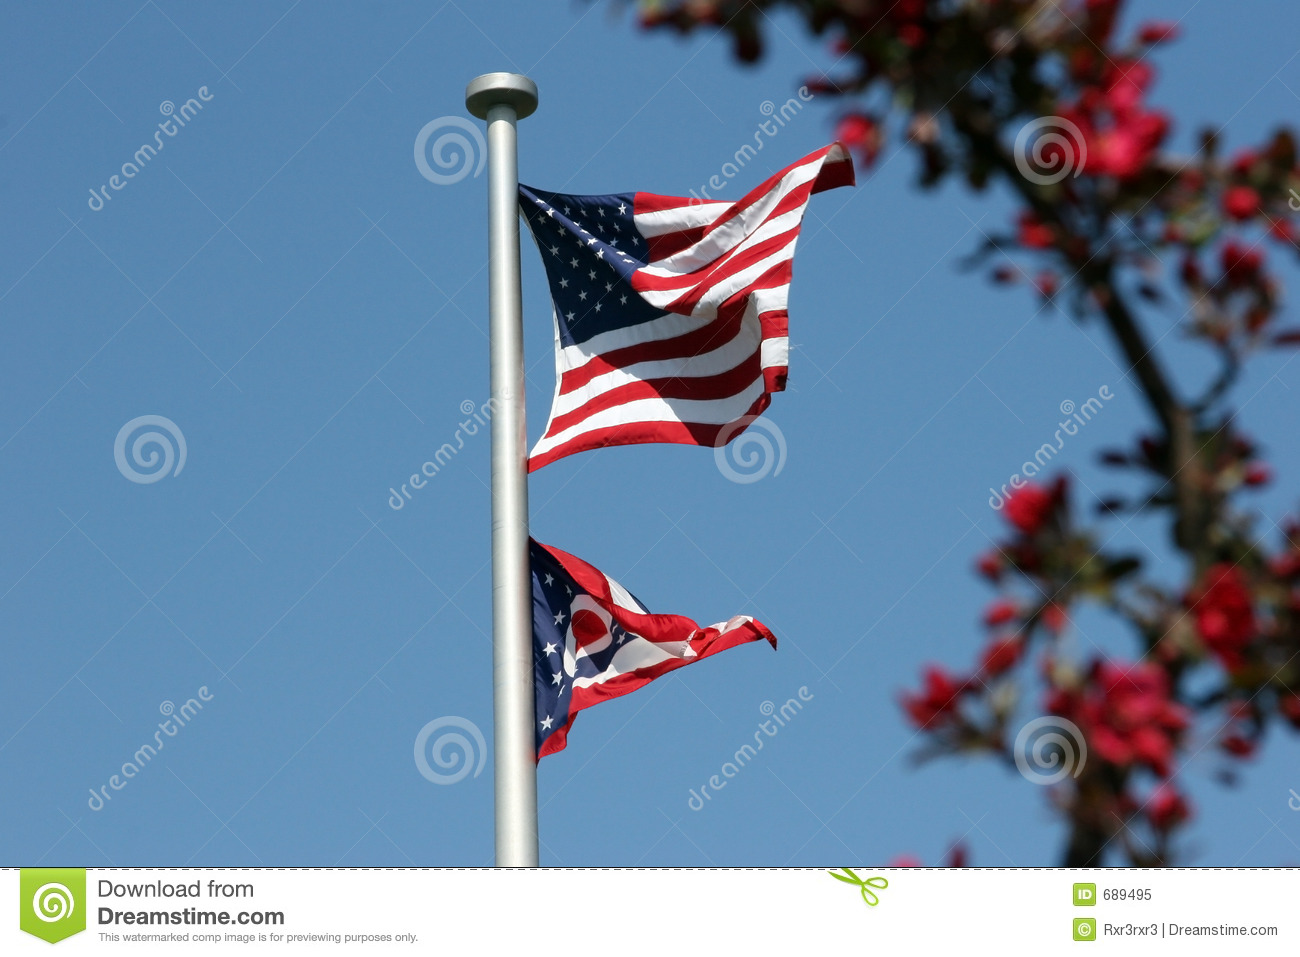 Flowers and freedom ii royalty free stock photo image 689495 - Flowers that mean freedom ...